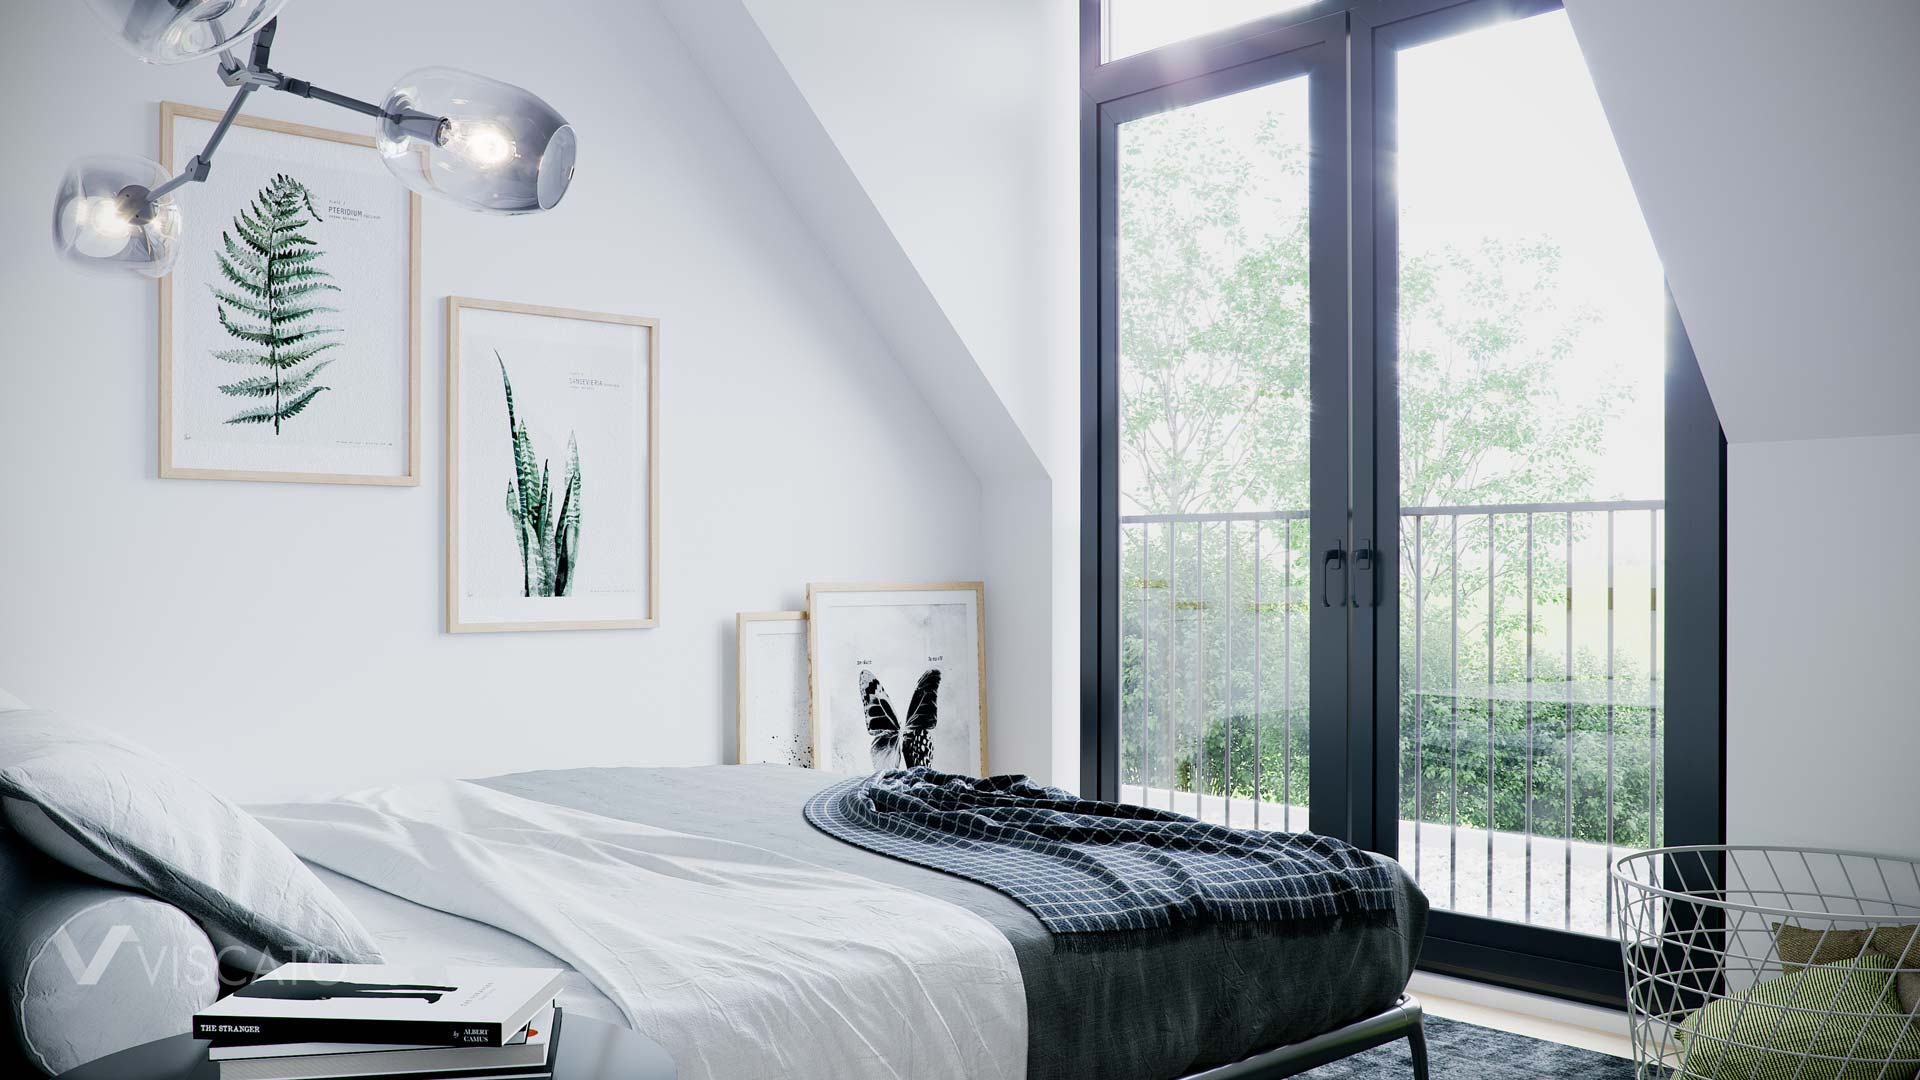 Attic bedroom, 3D visualization